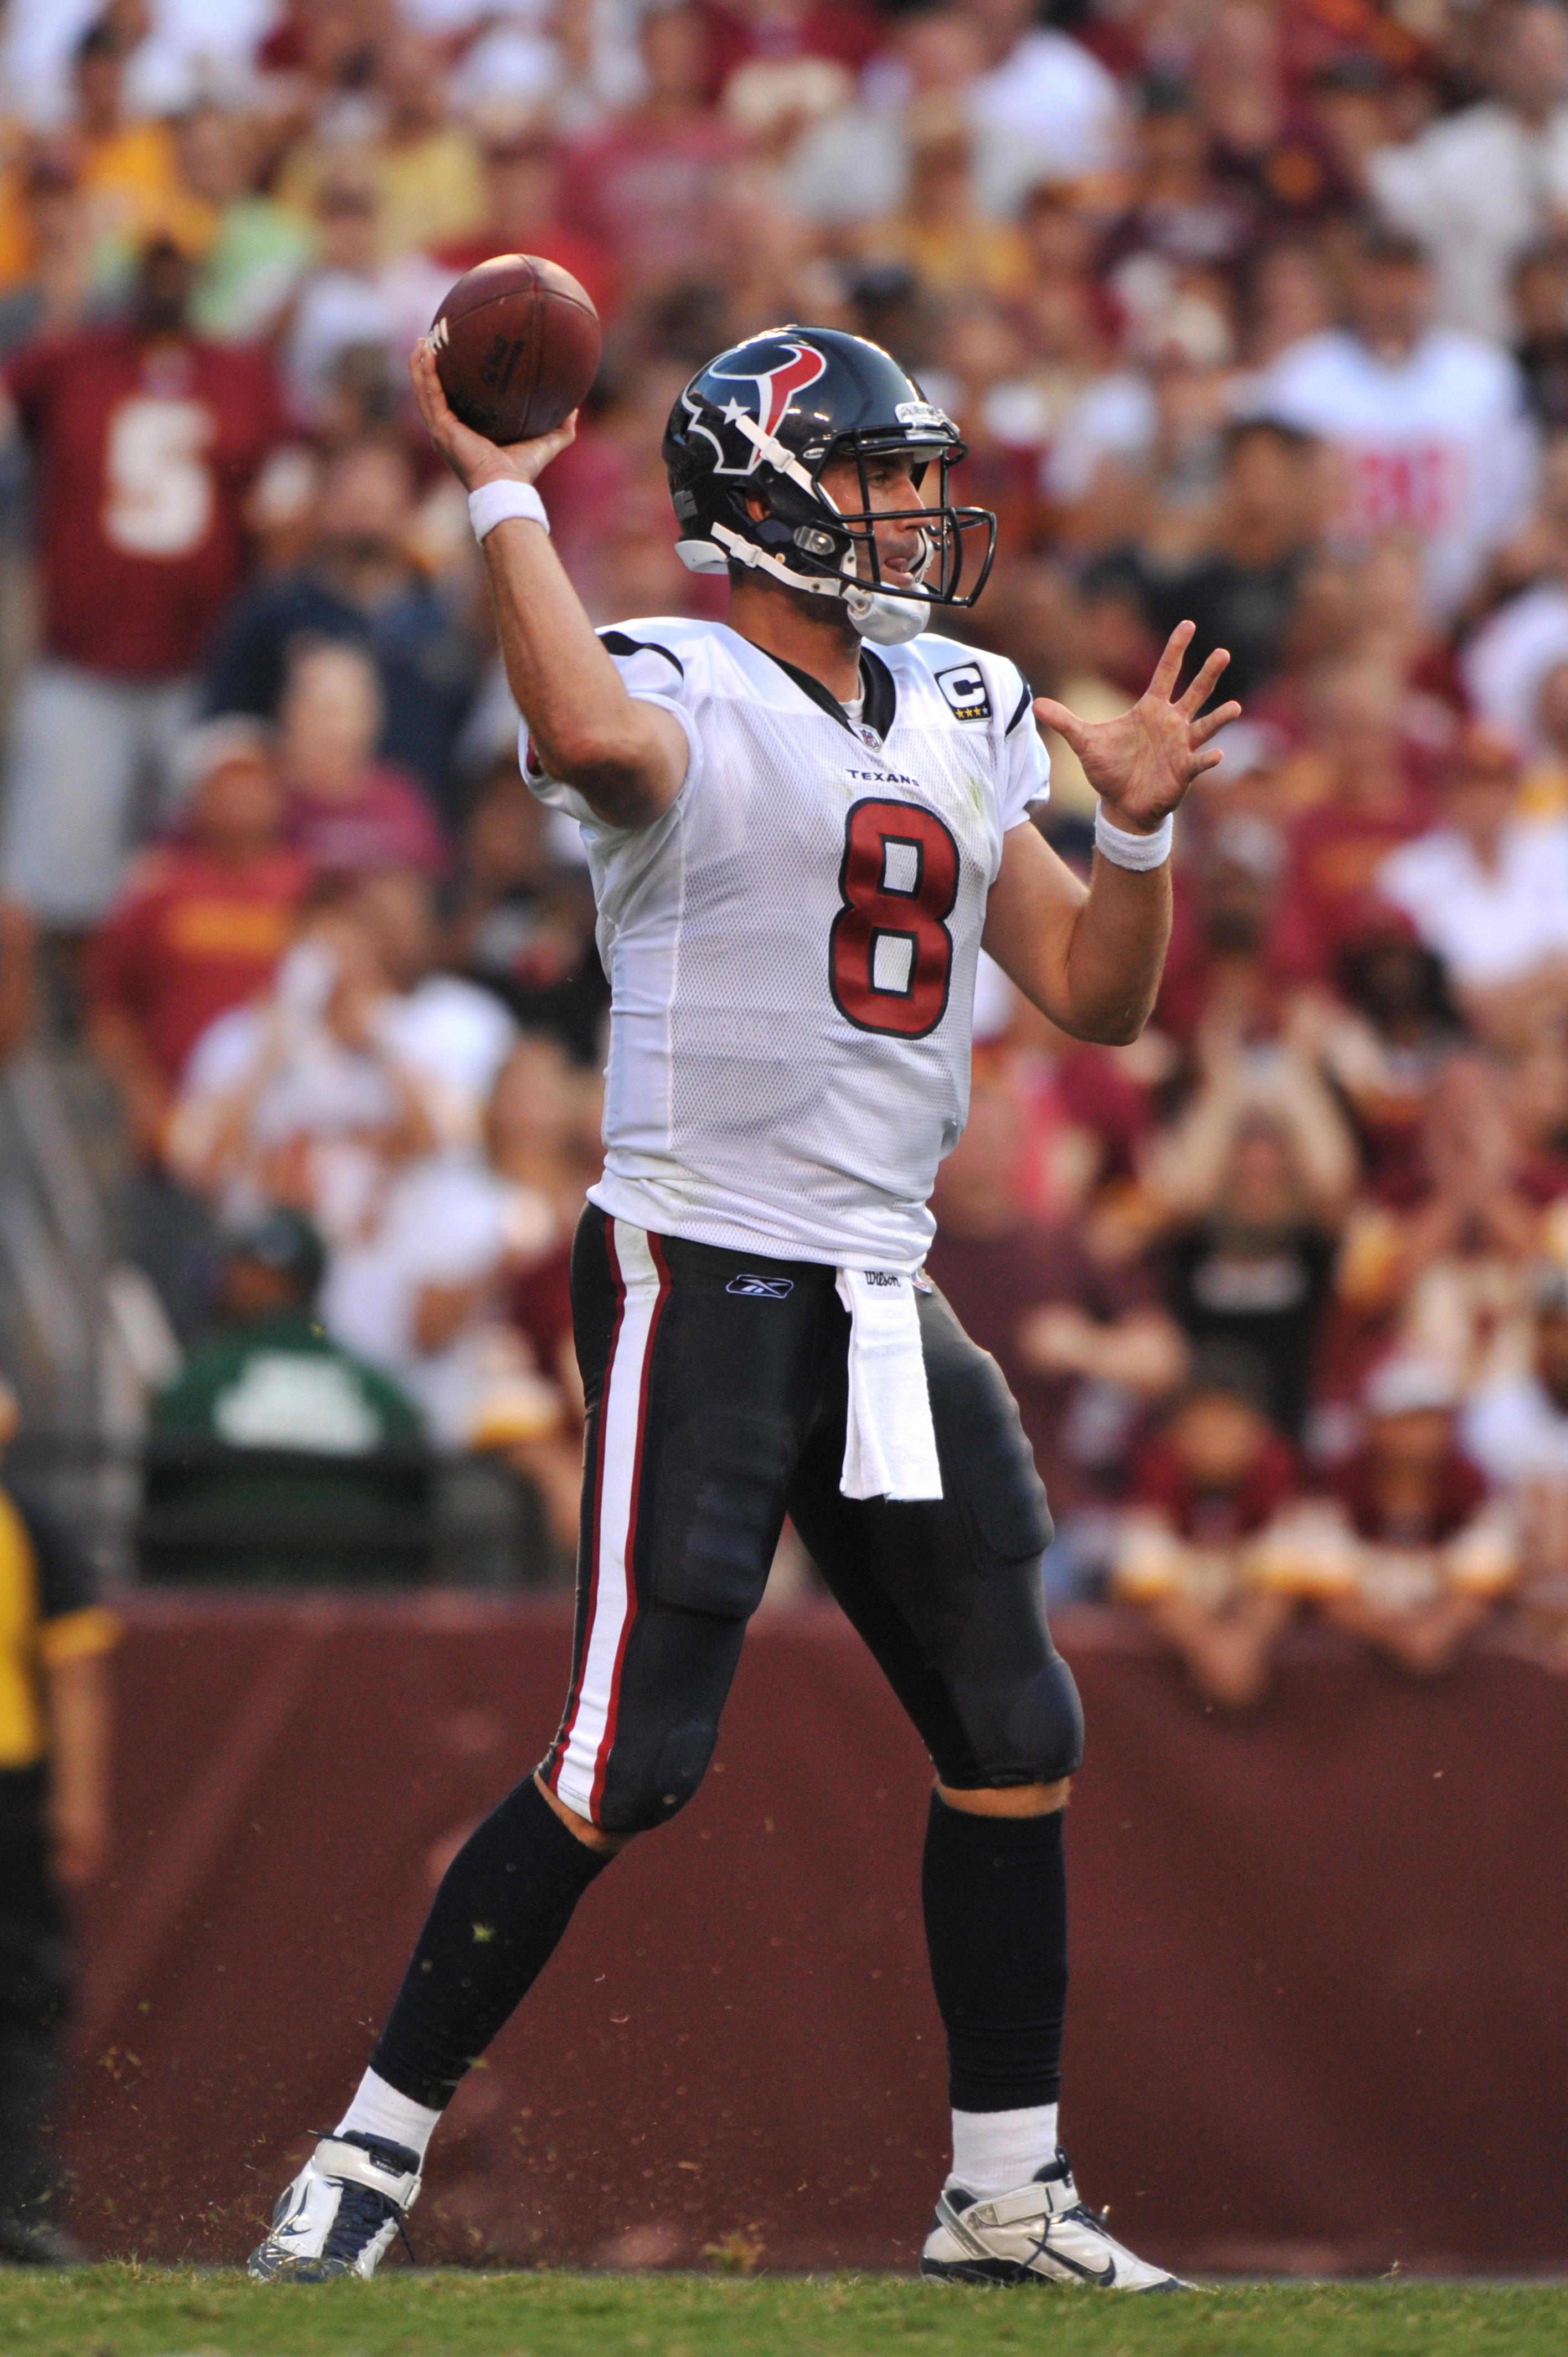 LANDOVER - SEPTEMBER 19:  Matt Schaub #8 of the Houston Texans passes against the Washington Redskins at FedExField on September 19, 2010 in Landover, Maryland. The Texans defeated the Redskins 30-27 in overtime. (Photo by Larry French/Getty Images)